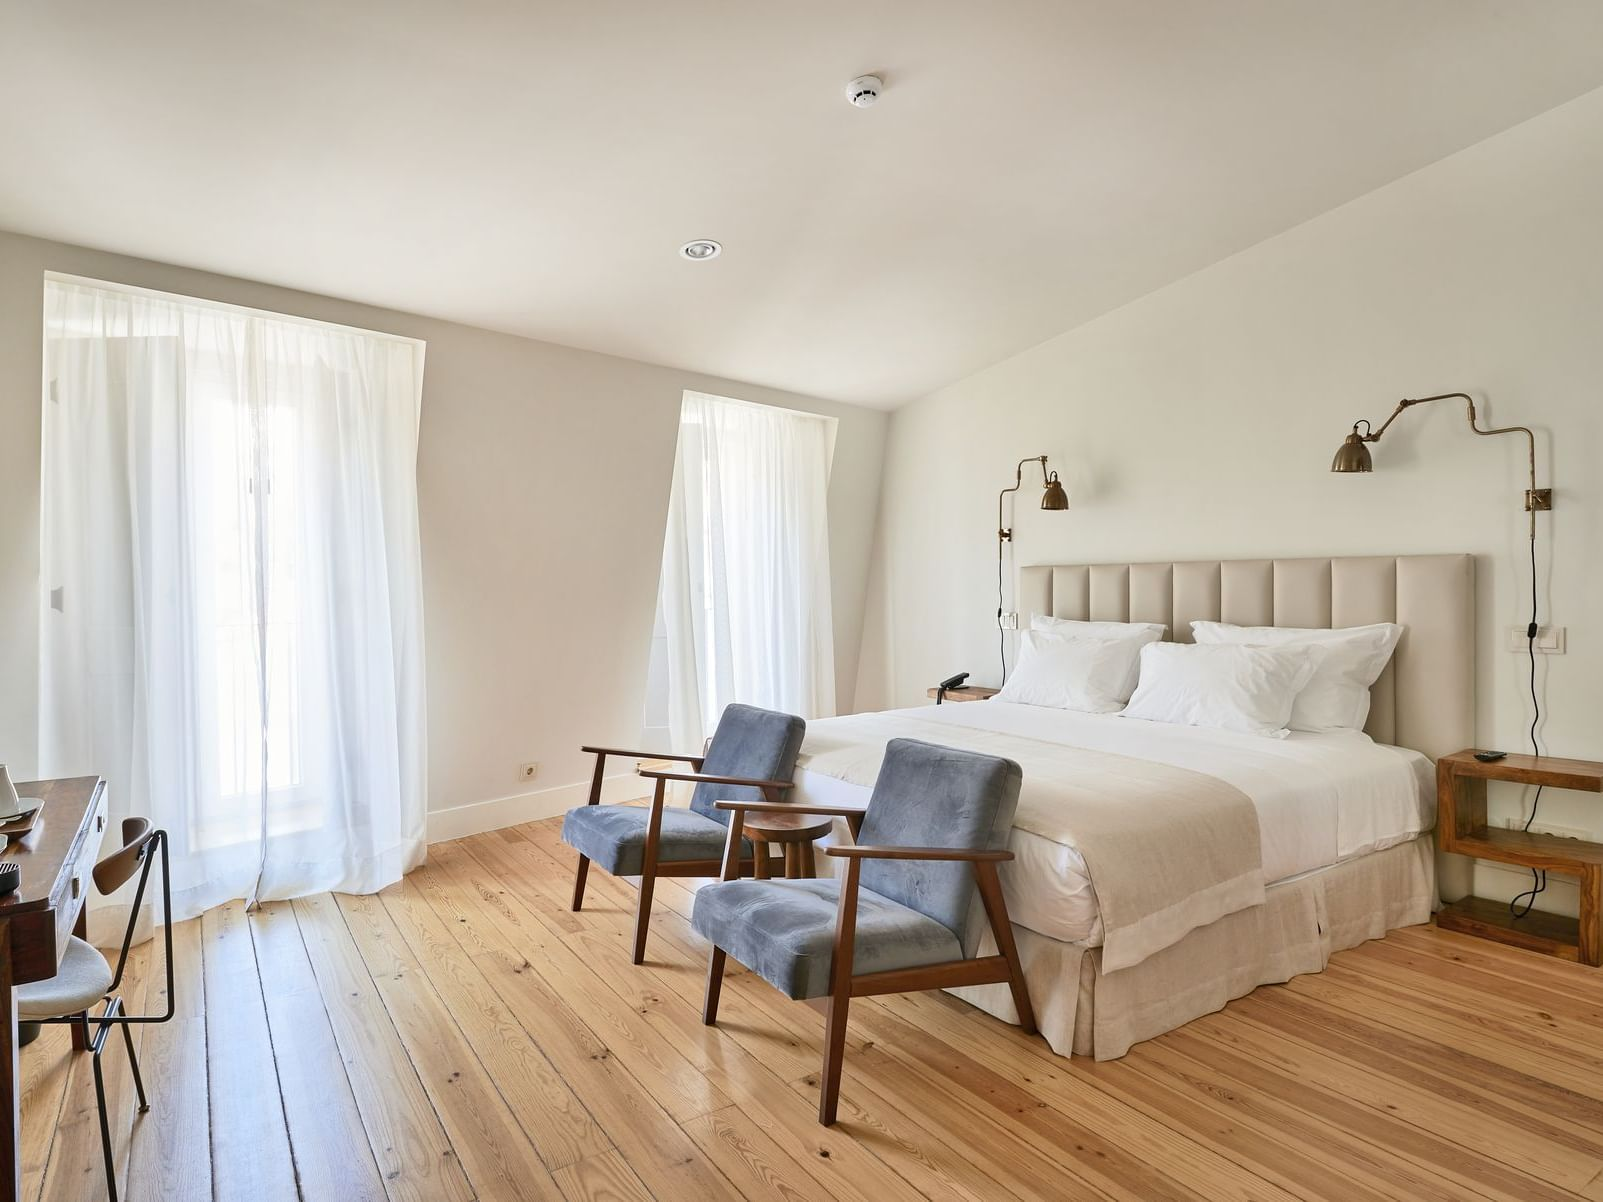 Hotel Alegria room with kindg bed, accent chairs and desk